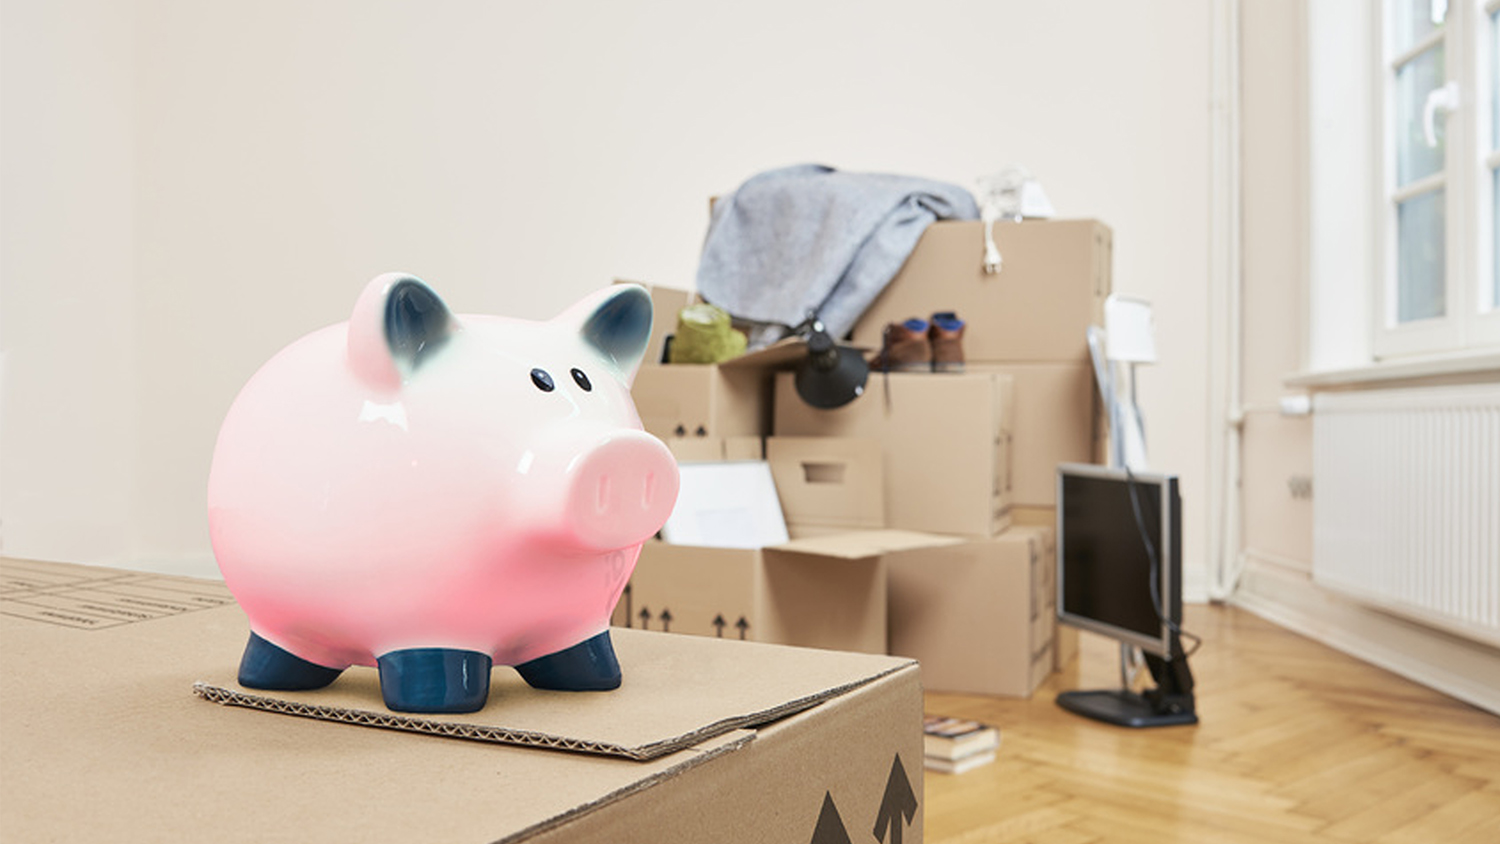 HOW TO SAVE FOR YOUR DREAM FURNITURE